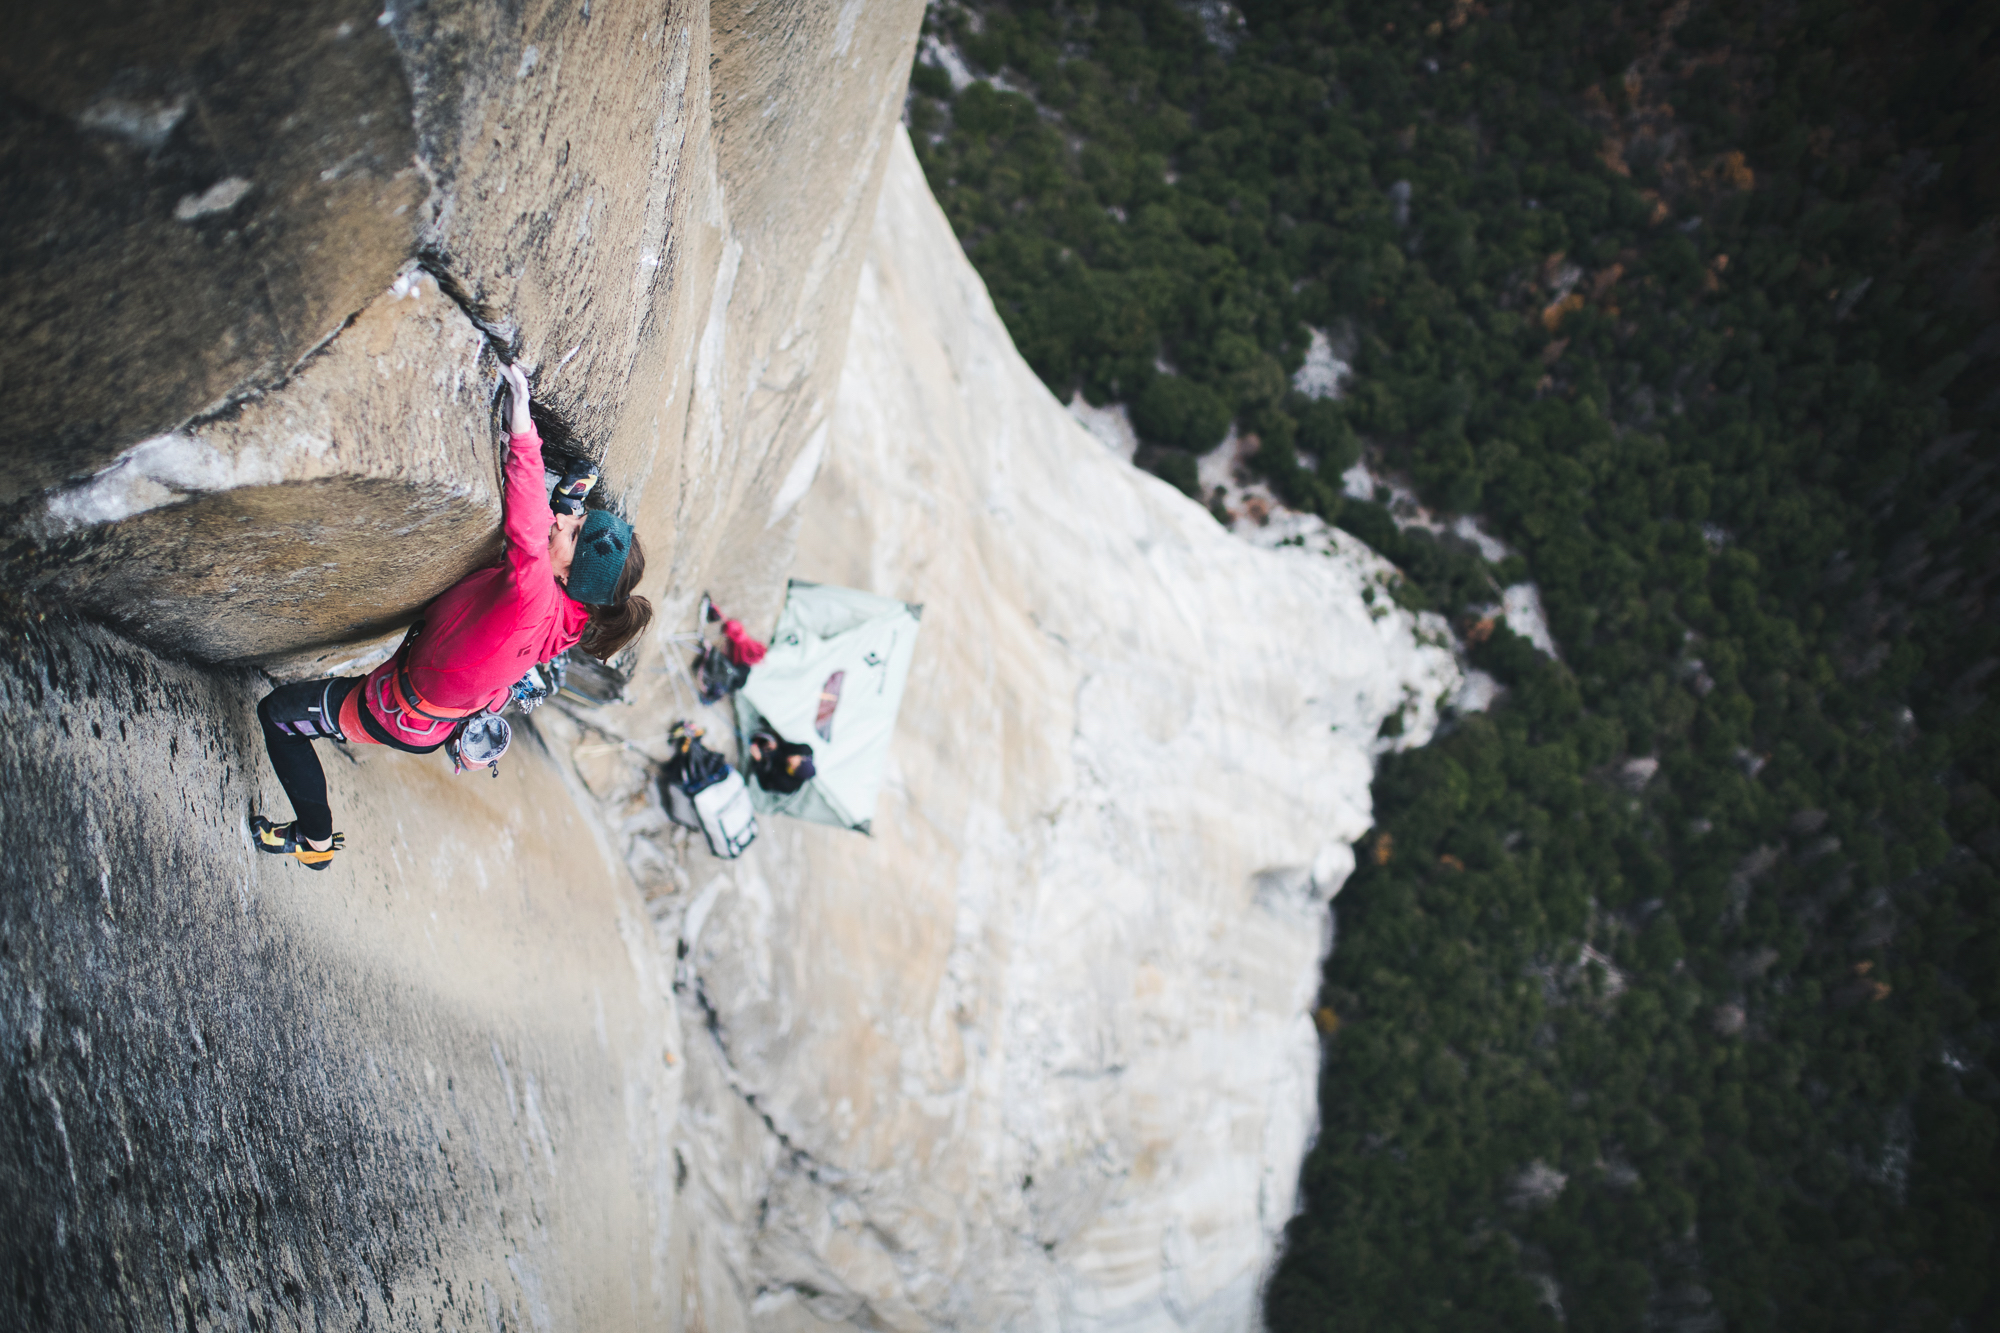 Barbara Zangerl on Pitch 22, Magic Mushroom (5.14a). [Photo] Francois Lebeau